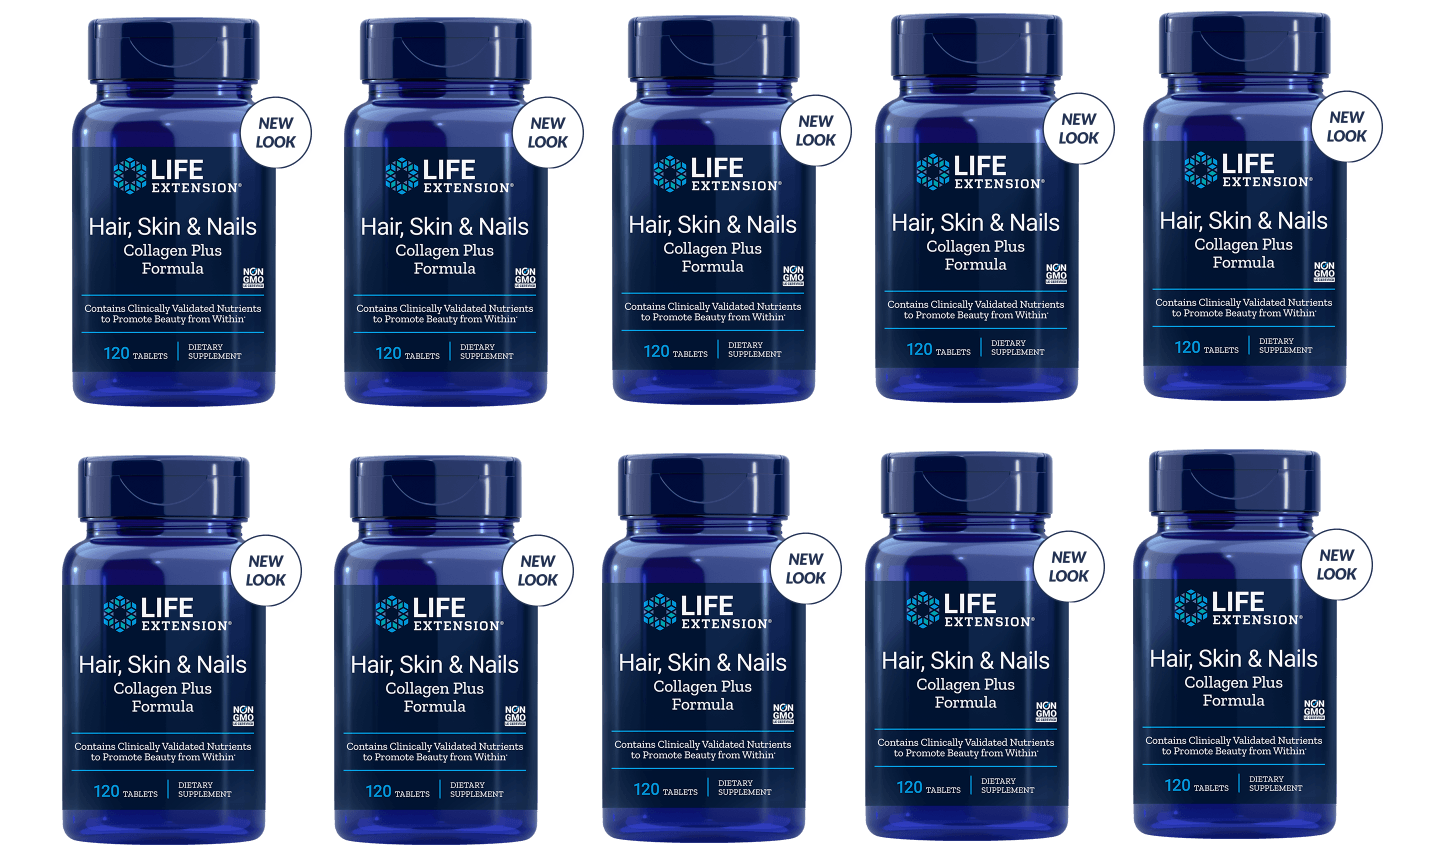 Life Extension Hair, Skin & Nails Collagen Plus Formula, 120 Tablets, 10-packs